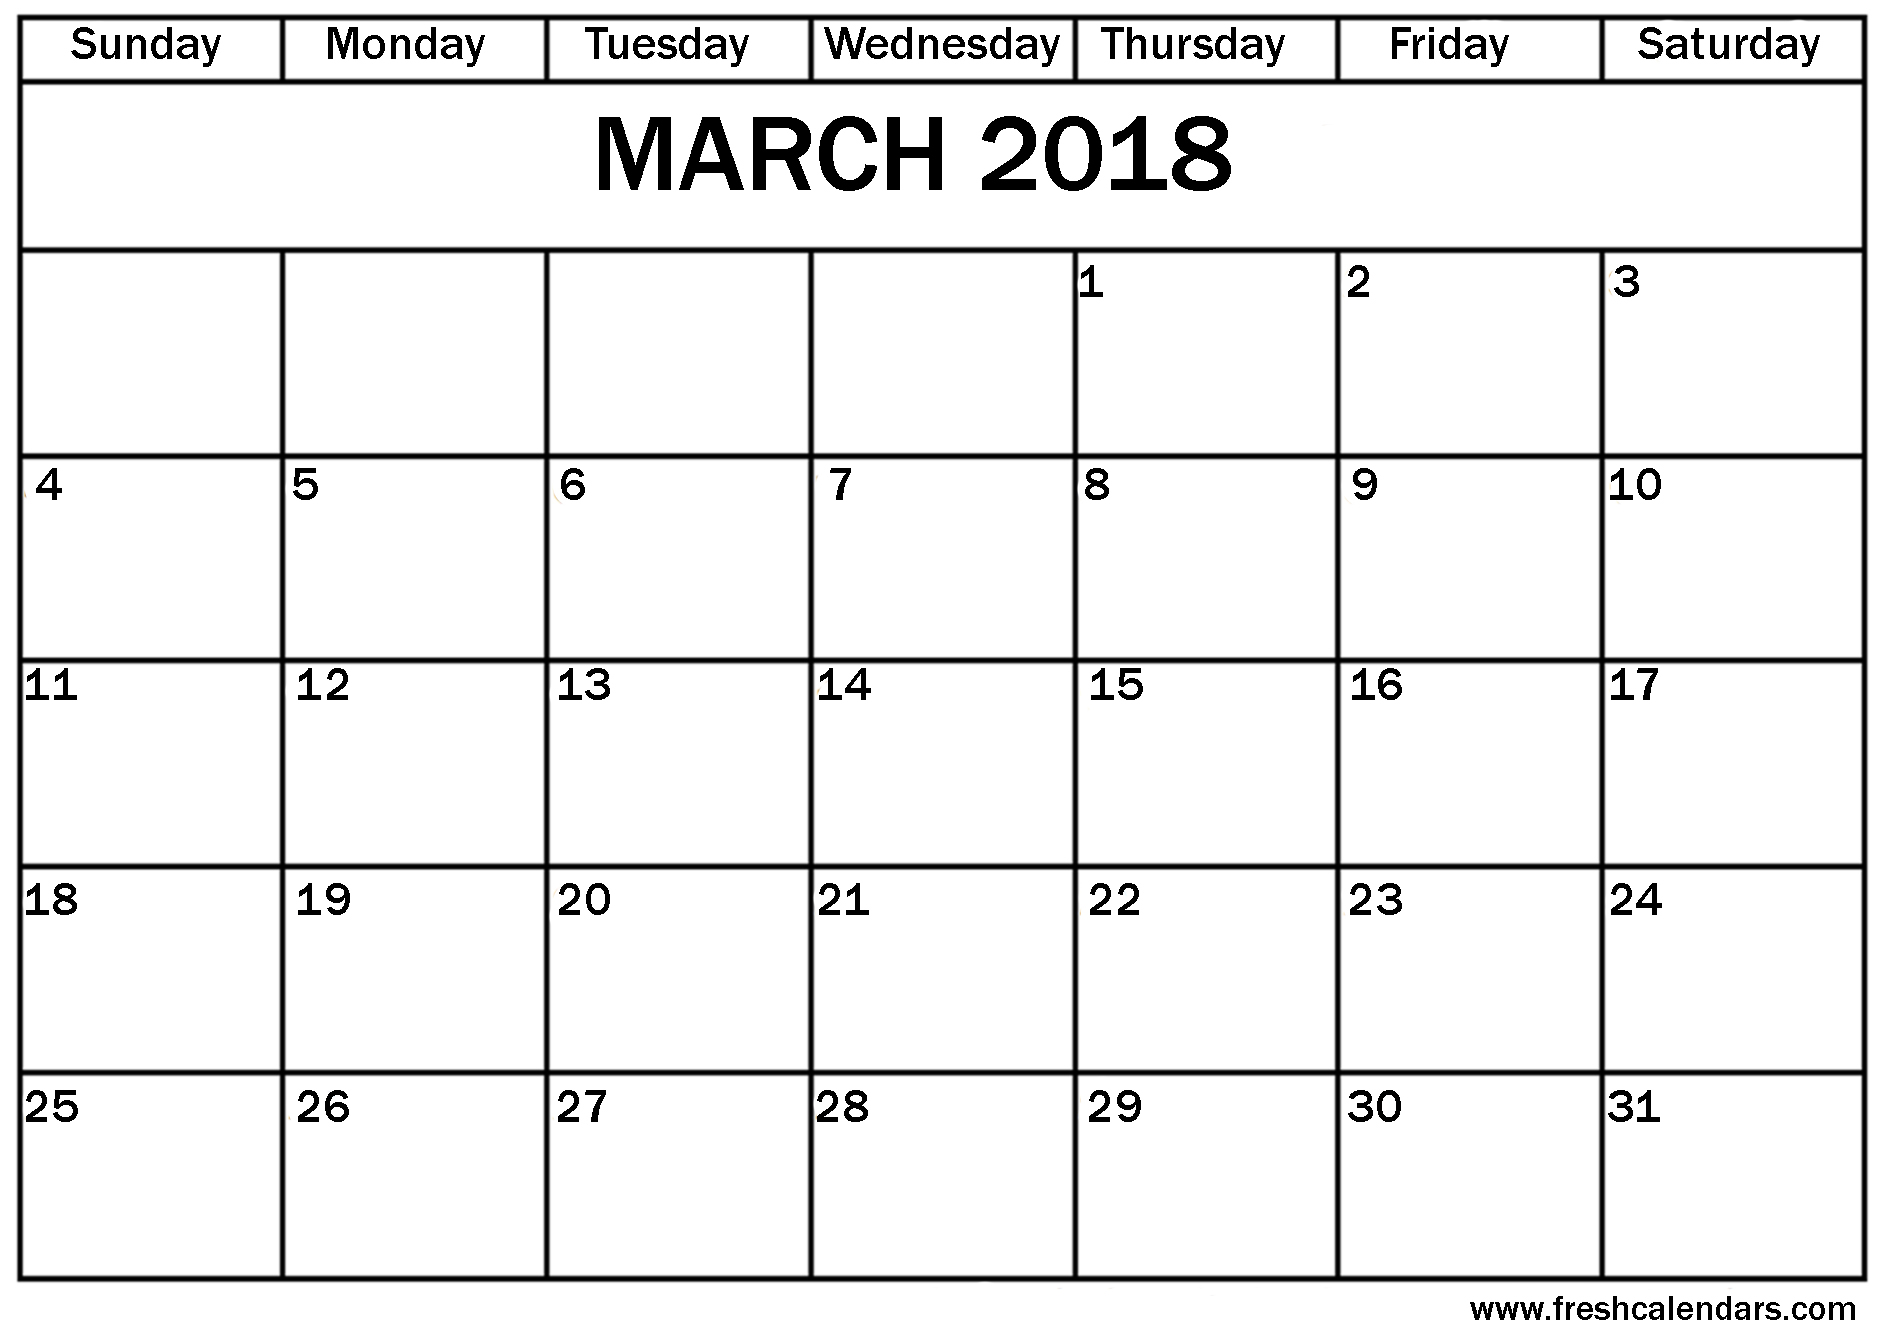 Blank Calendar Template Printable : March calendar printable template with holidays pdf